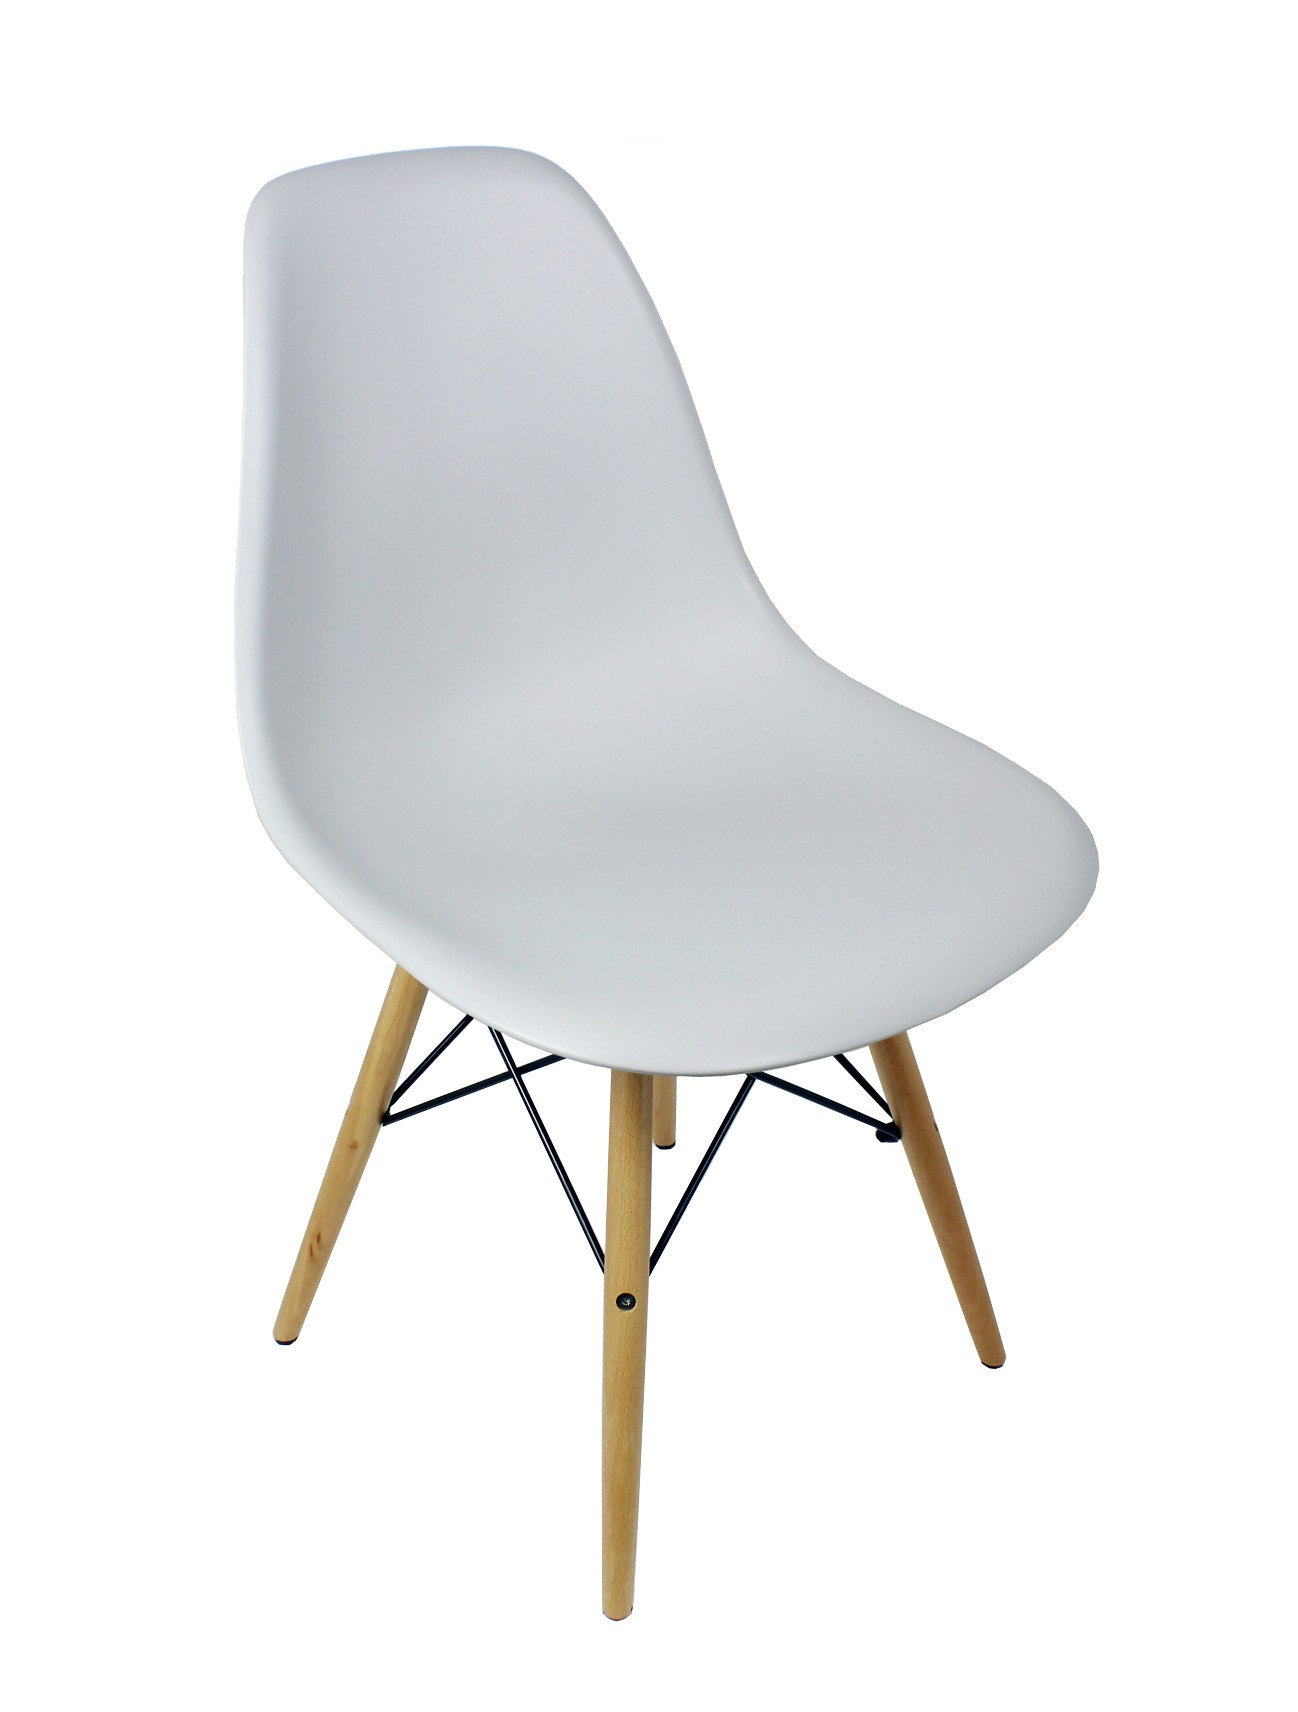 Eames Style DSW Dining Shell Chair With Wood Eiffel Legs In Light Gray